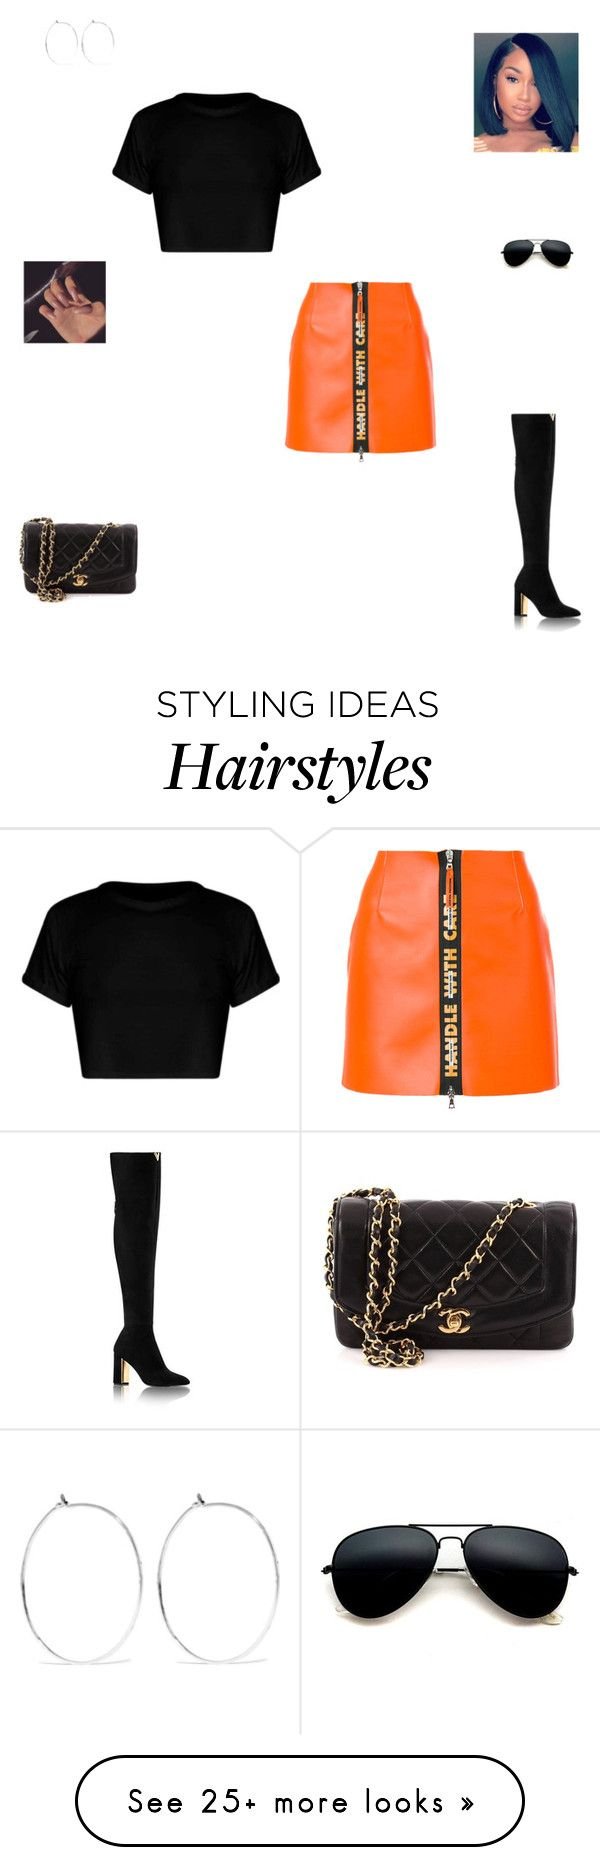 """""""Handle with care"""" by synclairel on Polyvore featuring Heron Preston, Chanel, Catbird, Winter, cute, casual and ootd"""